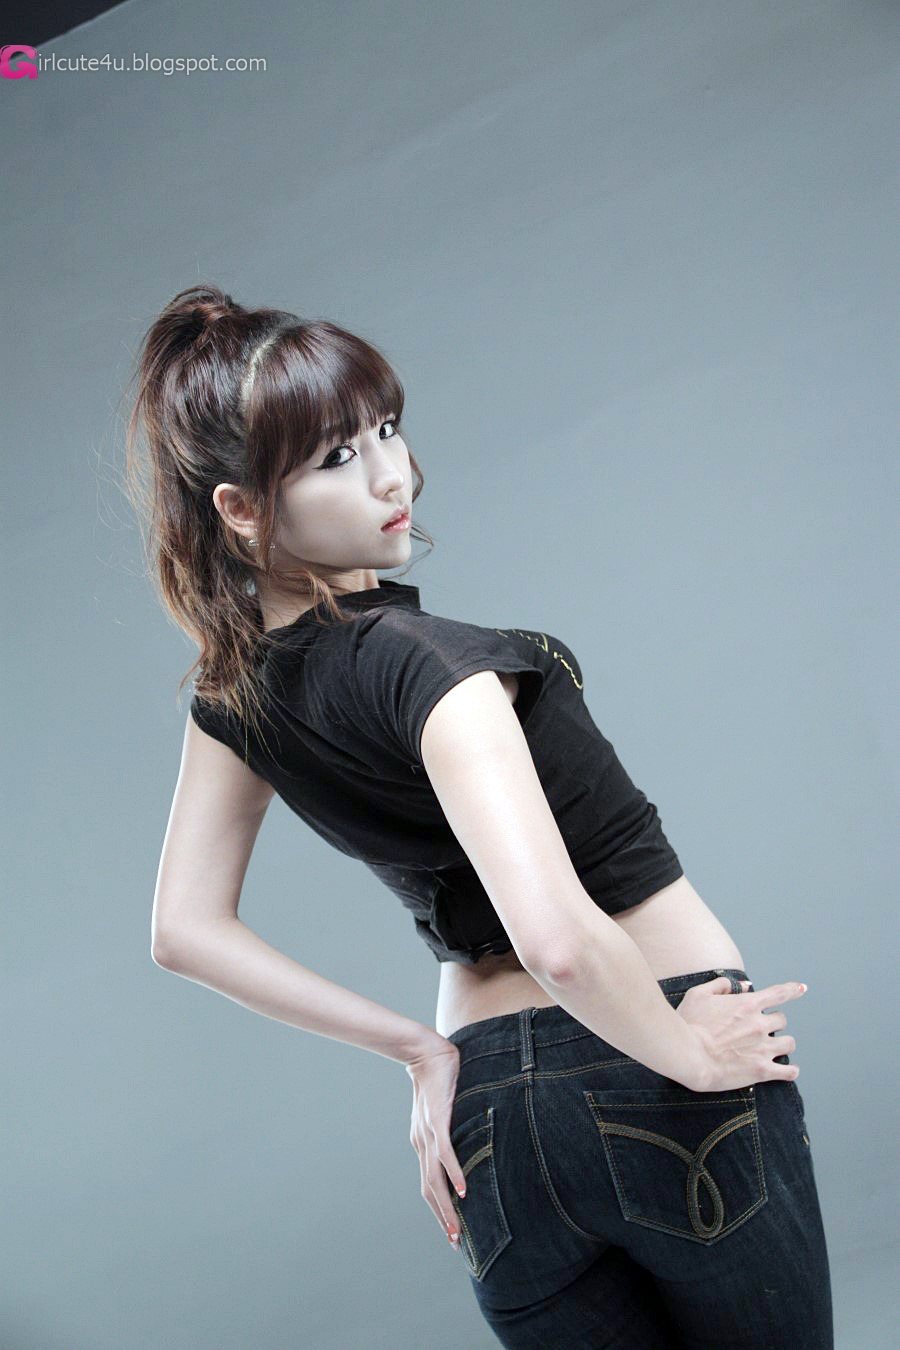 Lee Eun Hye In Black Top And Jeans  Cute Girl - Asian Girl-1538